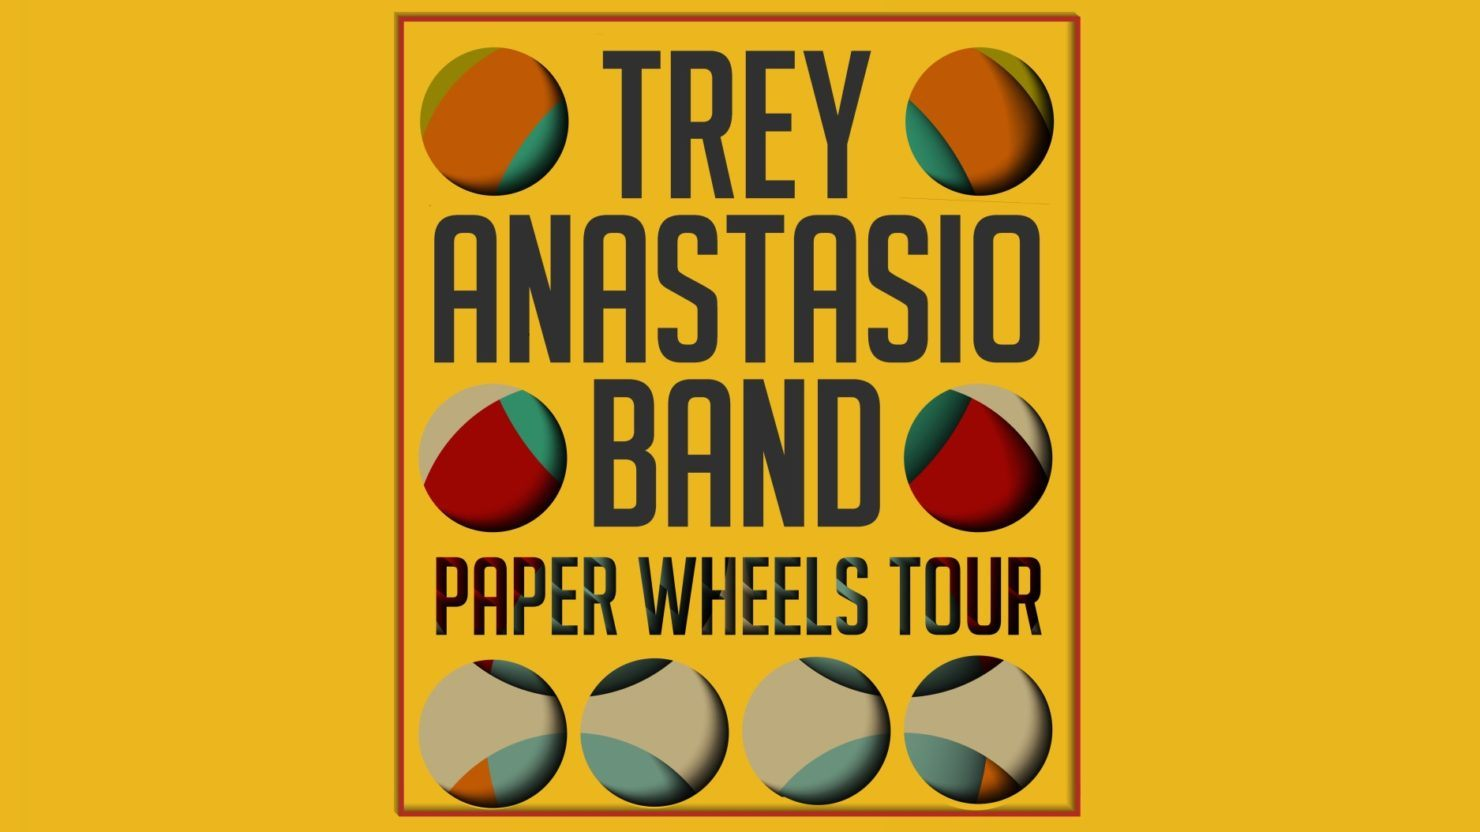 trey anastasio thesis paper You're a big fan of music, and you've come across this essay wanting  trey  anastasio — lead guitar: trey, like most bandleaders, heeds the  trey's  thesis consisted of a fantasy world gamehendge (similar to narnia.